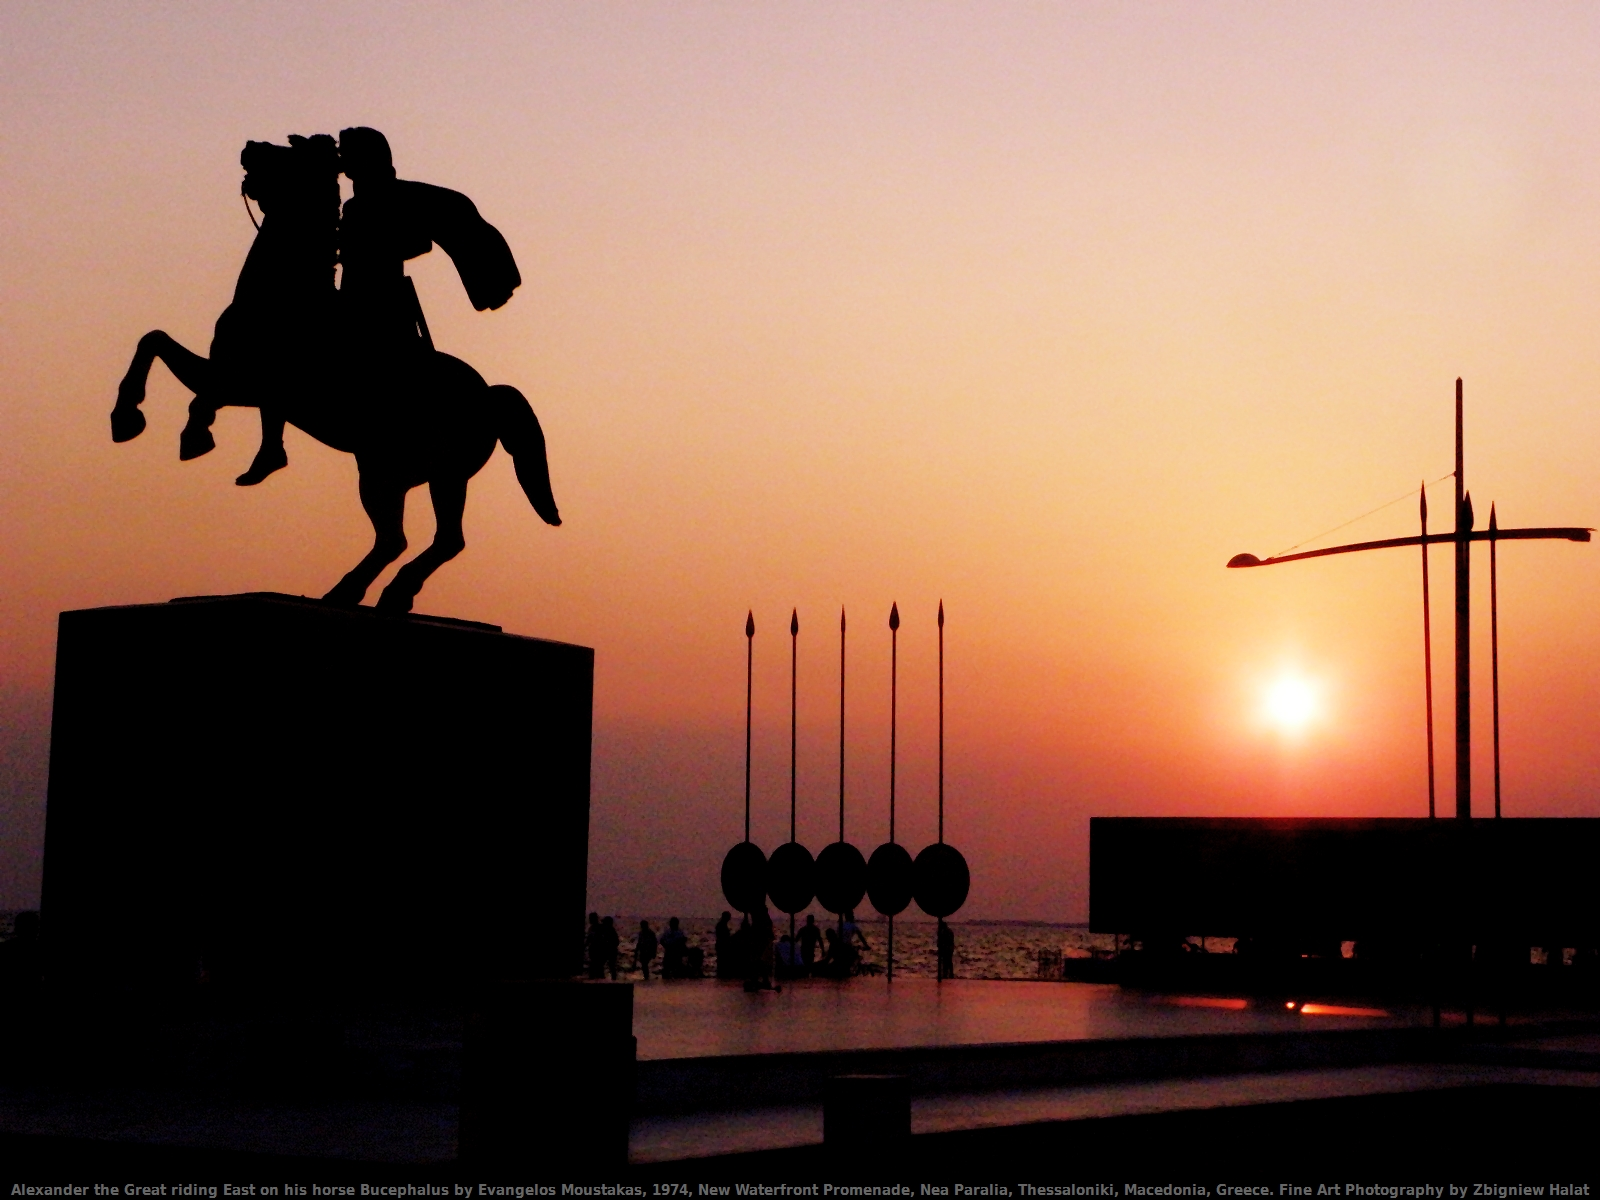 Alexander the Great riding East on his horse Bucephalus by Evangelos Moustakas, 1974, New Waterfront Promenade, Nea Paralia, Thessaloniki, Macedonia, Greece. Fine Art Photography by Zbigniew Halat